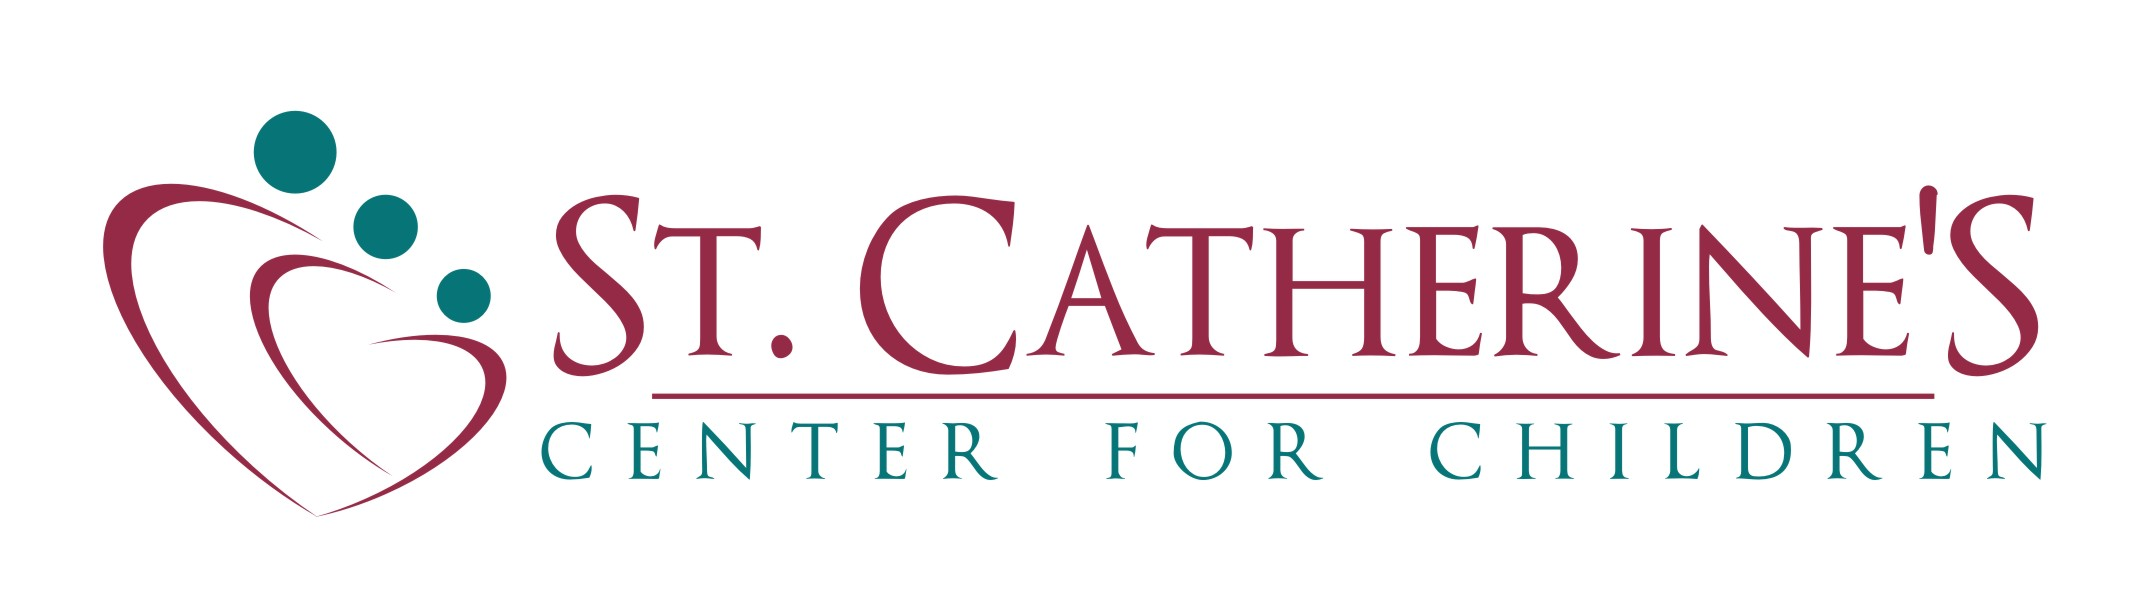 St Catherine's Center for children logo